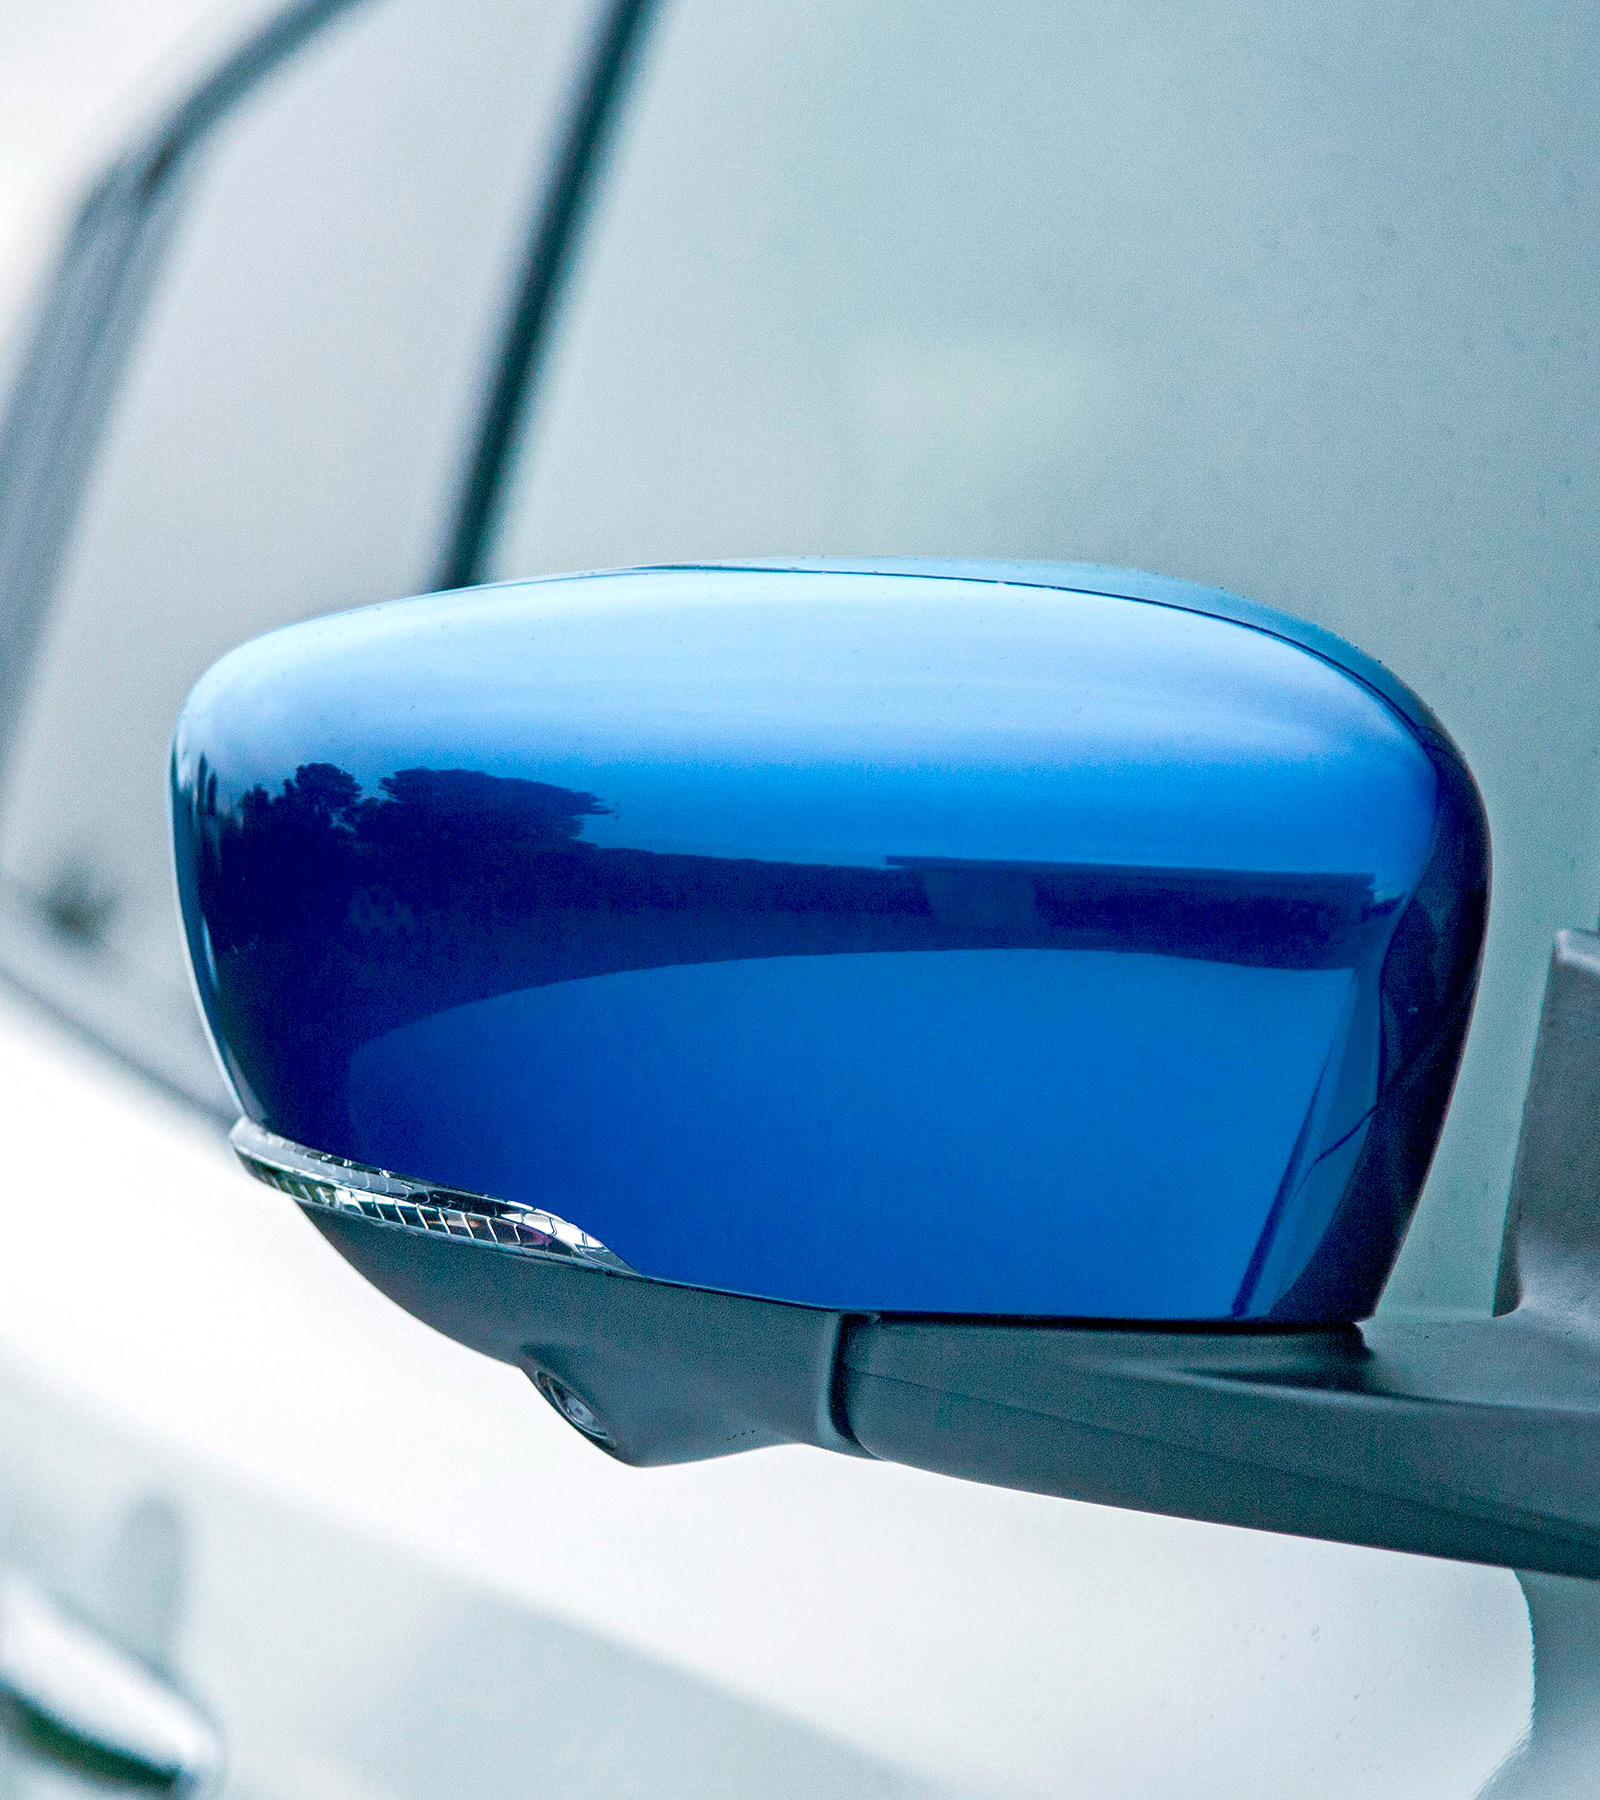 Nissan LEAF blue mirror caps